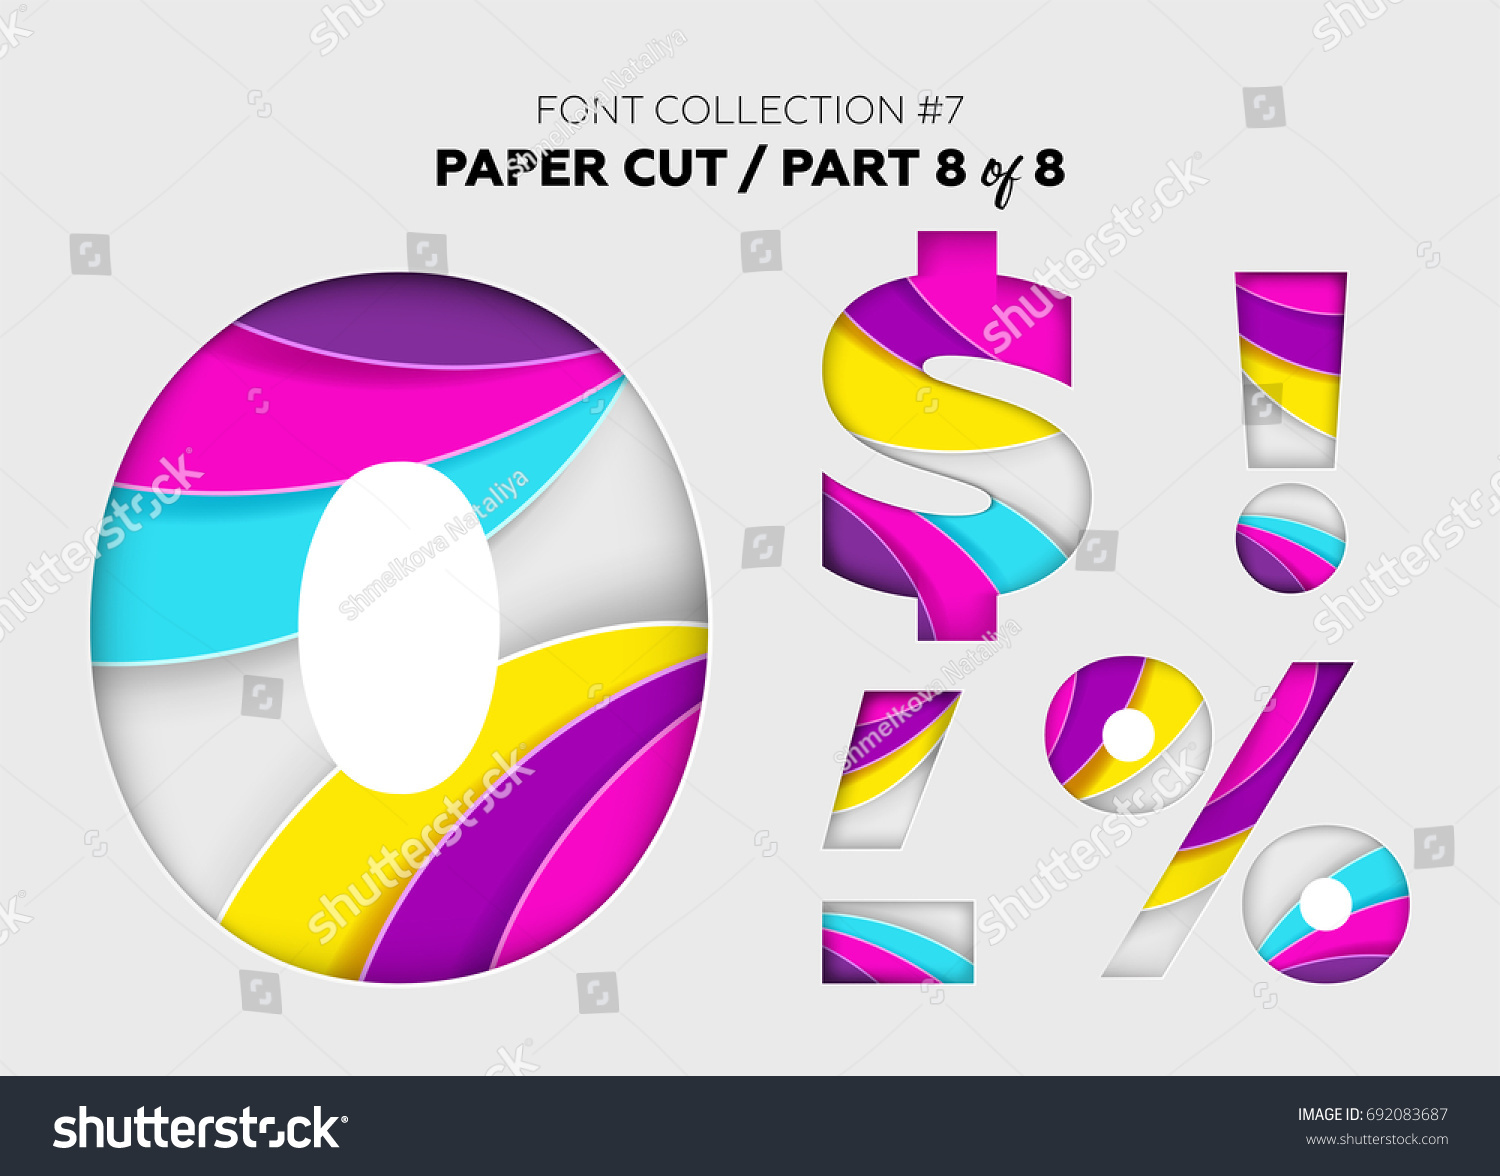 Carved Paper Art Font Design Beautiful Stock Vector - Amazing artist carves beautiful designs paper